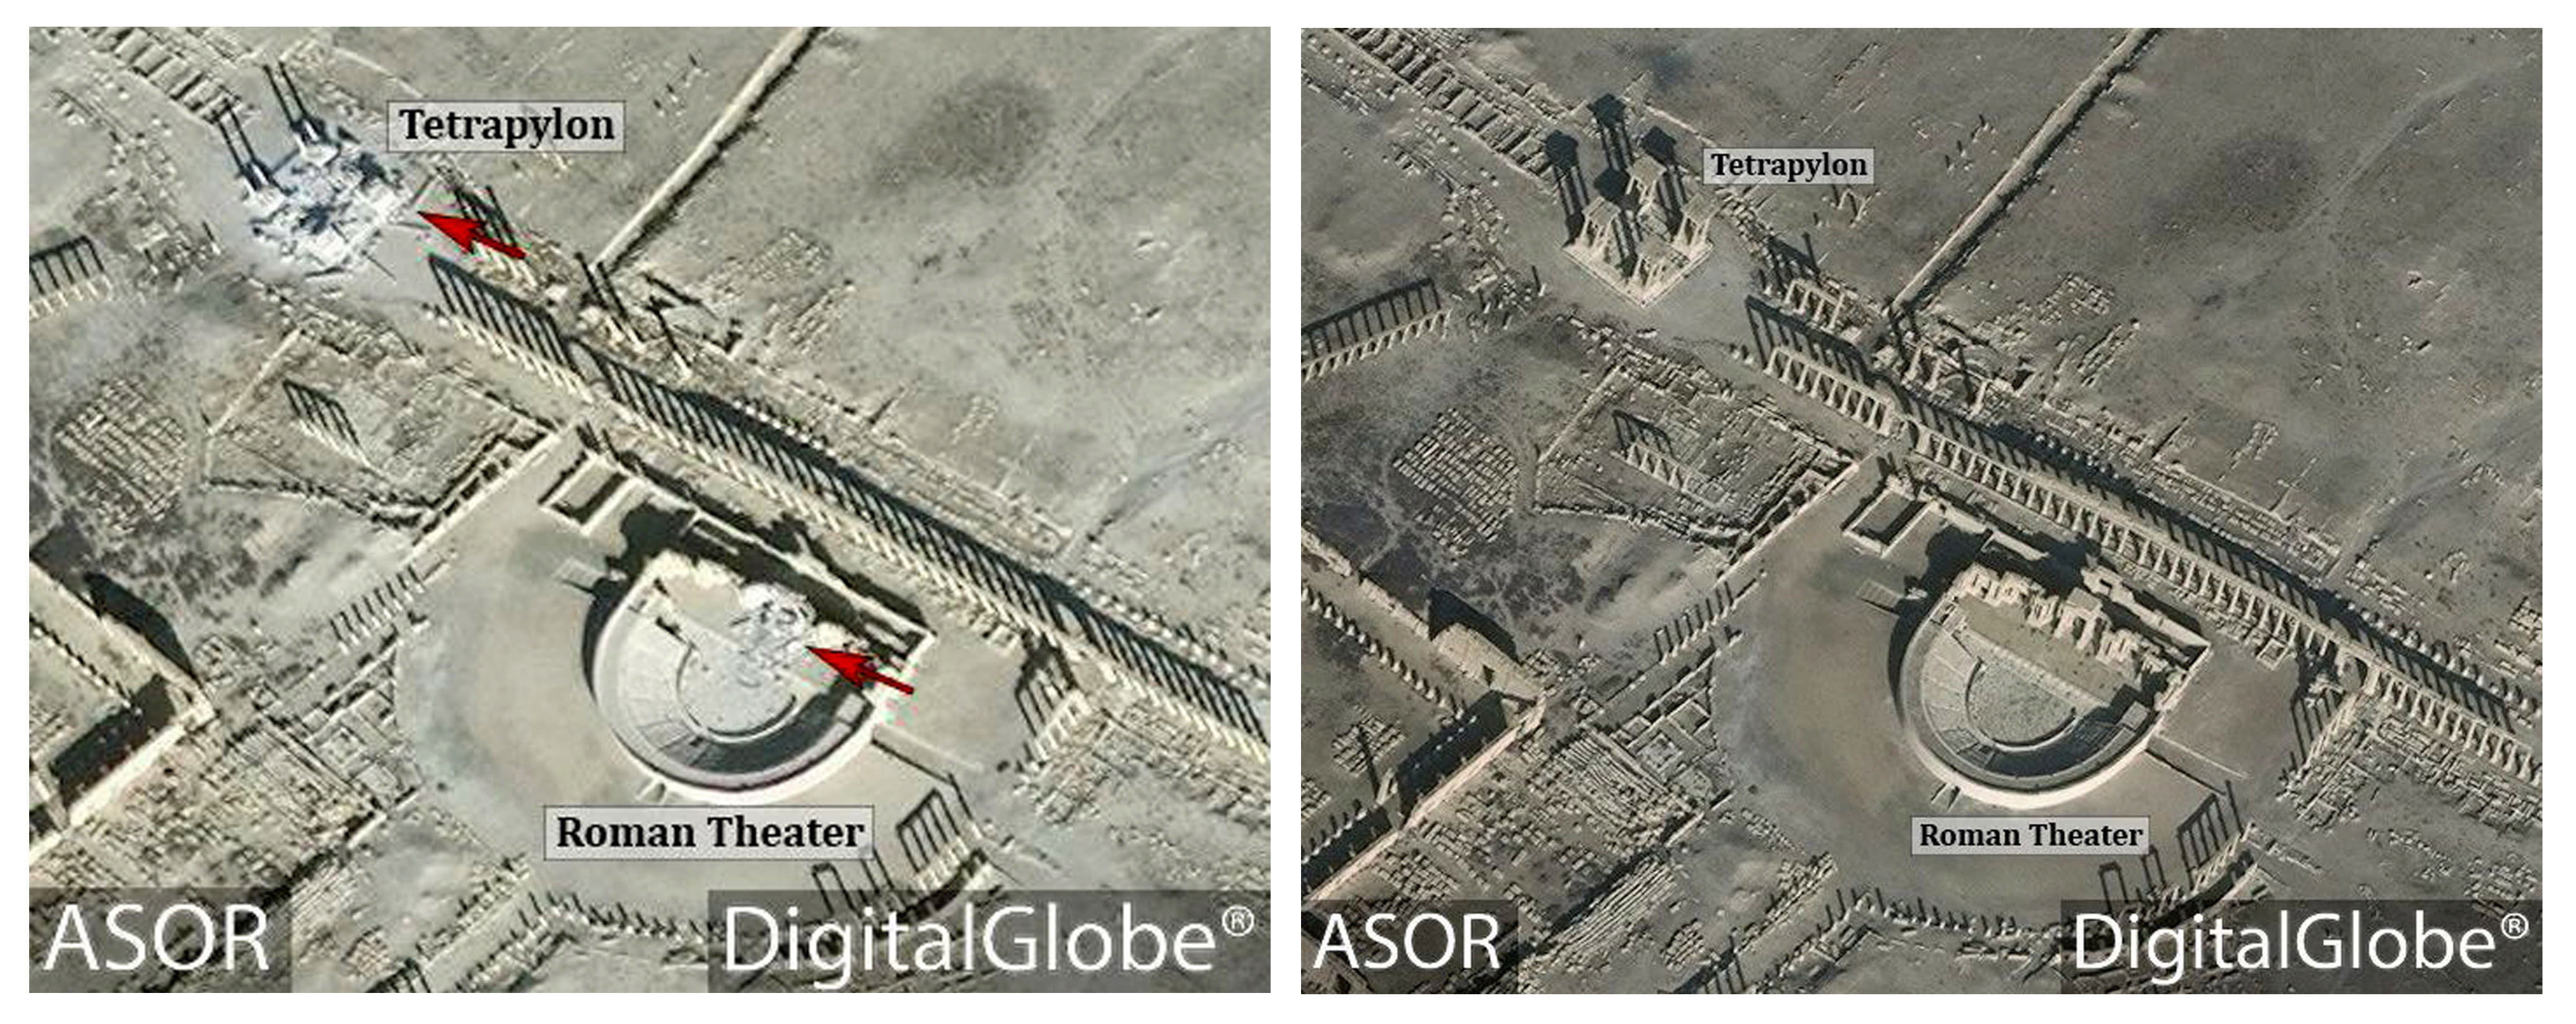 This combination of satellite images released by the American Schools of Oriental Research (ASOR) on Friday, Jan. 20, 2017 as captured by DigitalGlobe shows the Roman theater at the UNESCO World Heritage Site of Palmyra, Syria on Jan. 10, 2017 with new damages indicated in red, left, and the site on Dec. 26, 2016, right. Islamic State group militants destroyed a landmark ancient Roman monument and parts of the theater in Syria's historic town of Palmyra, the government and opposition monitoring groups said Friday. (ASOR/ DigitalGlobe via AP)